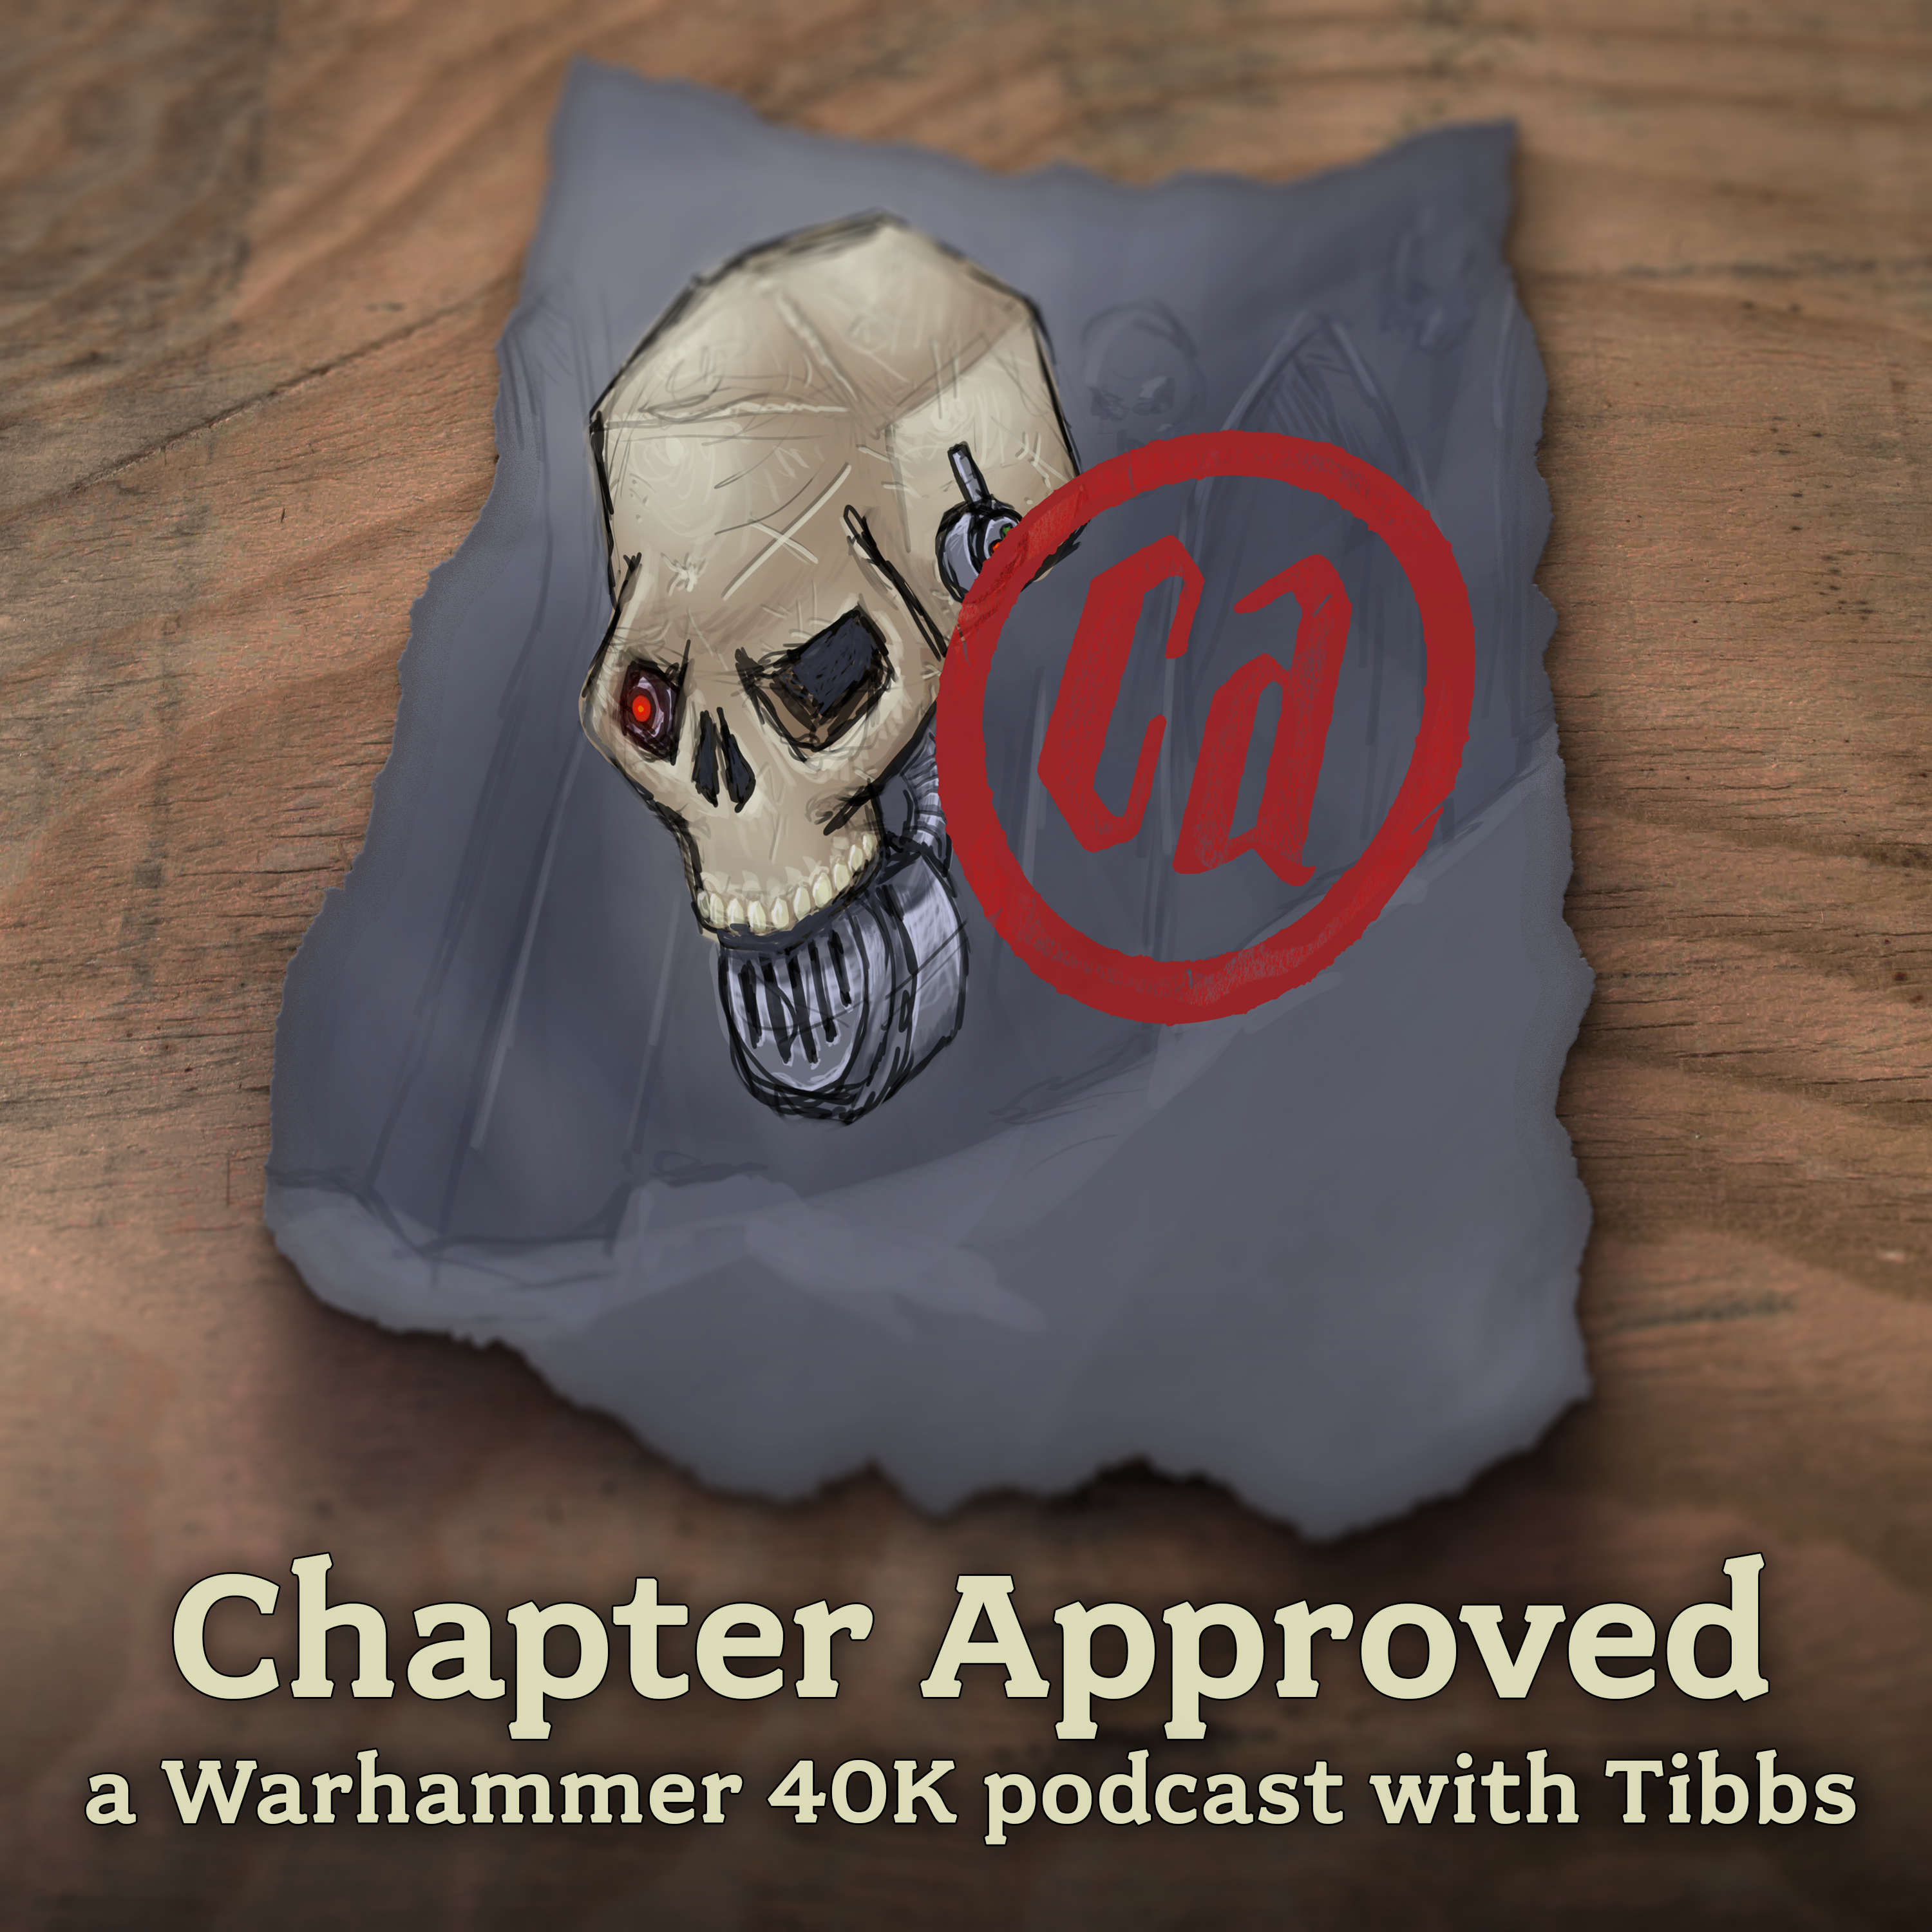 Best Squad Tactica A Warhammer 40k Kill Team Podcast Podcasts Most Downloaded Episodes Battlefoam promo codes.get 16 battle foam coupon codes and promo codes at couponbirds. best squad tactica a warhammer 40k kill team podcast podcasts most downloaded episodes